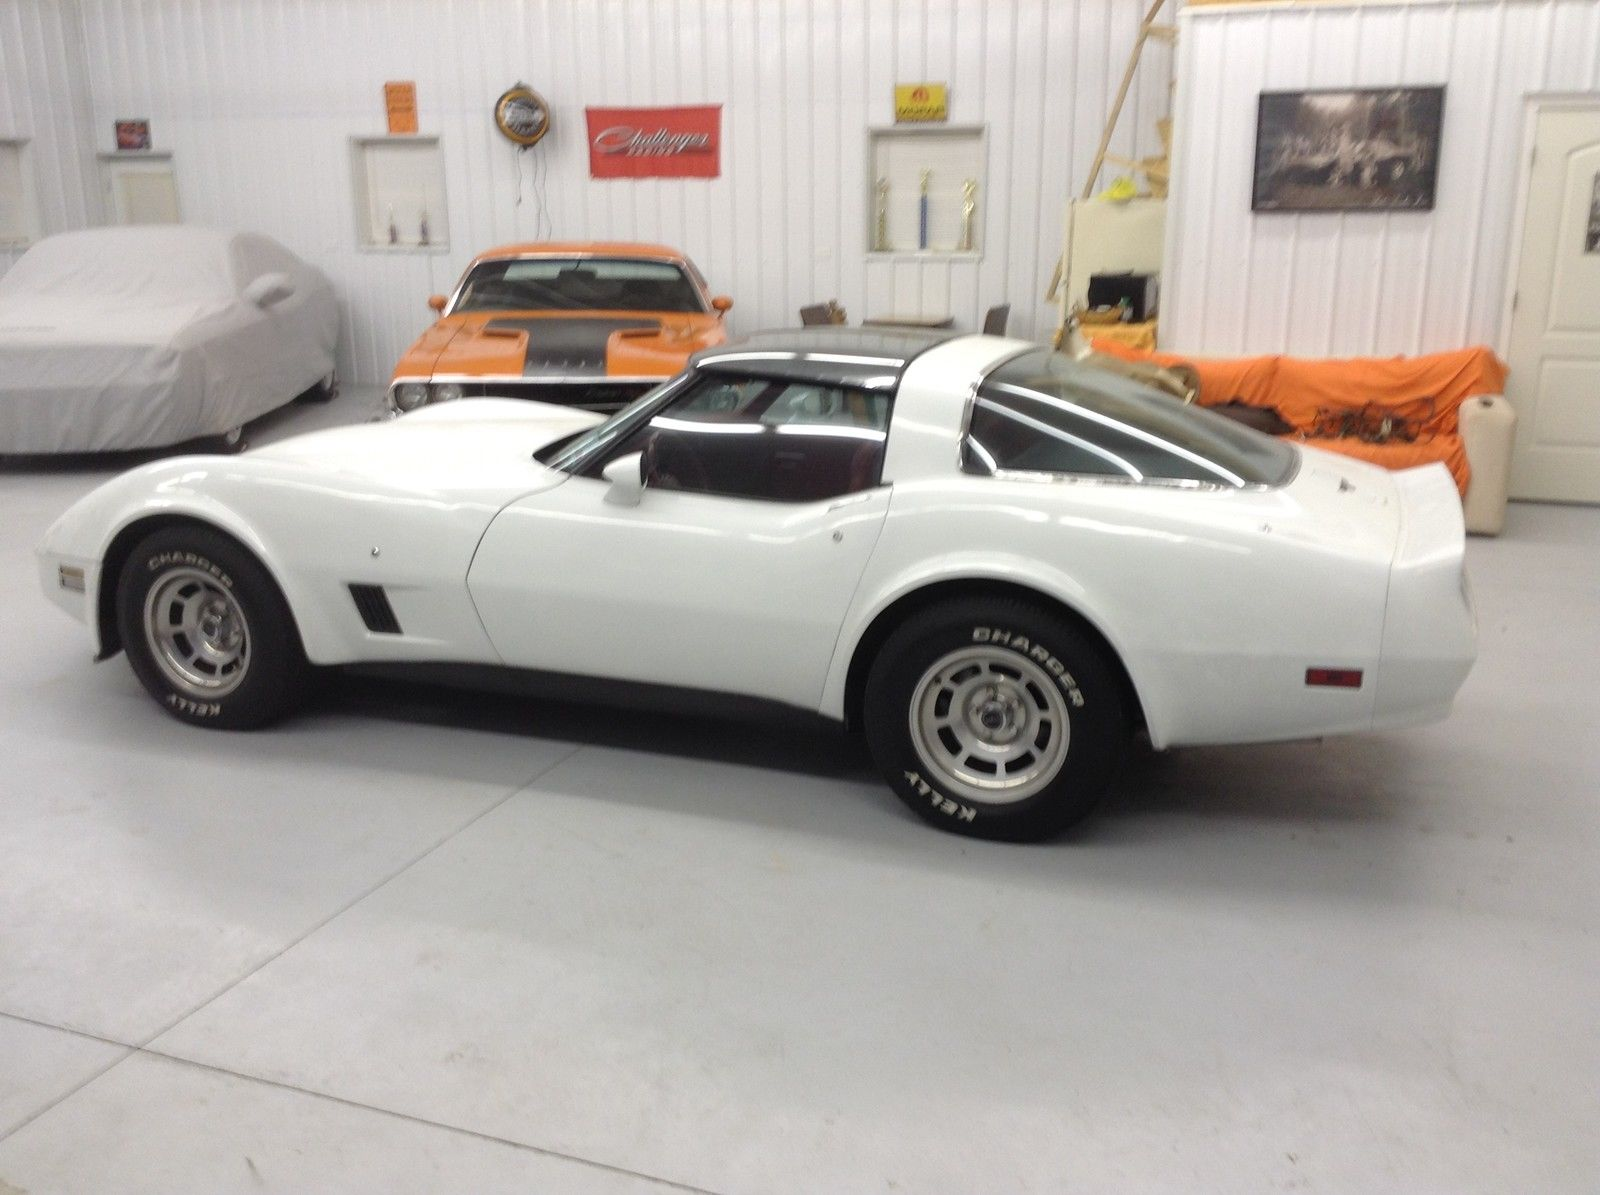 Sting Ray White Red Interior Original Low Miles Great Classic Chevrolet Corvette 1981 For